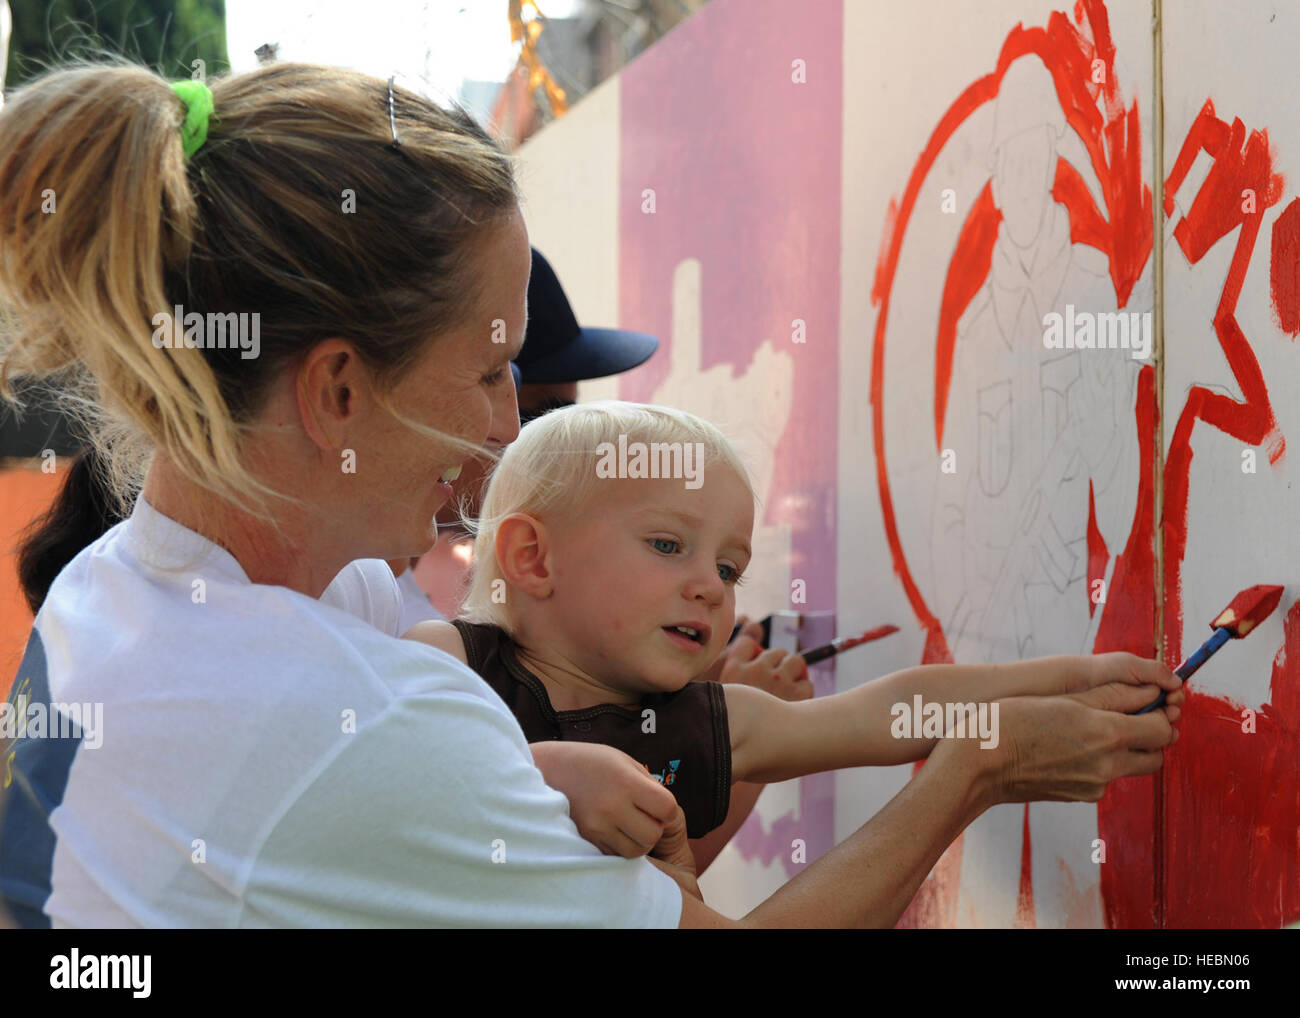 Linne Gherdovich and son Hudson, paint a mural of a Turkish soldier at the Kazim Karabekir School for Autism, June 9, 2014, Adana, Turkey. Gherdovich is a coordinator with the organization Love Impact Give Help Teach Serve, or LIGHTS located at Incirlik Air Base, Turkey. The group of active duty members, civilians and dependents of all ages focuses on helping the community with simple art projects at special needs schools around Adana. (U.S. Air Force photo by Staff Sgt. Veronica Pierce/Released) Stock Photo